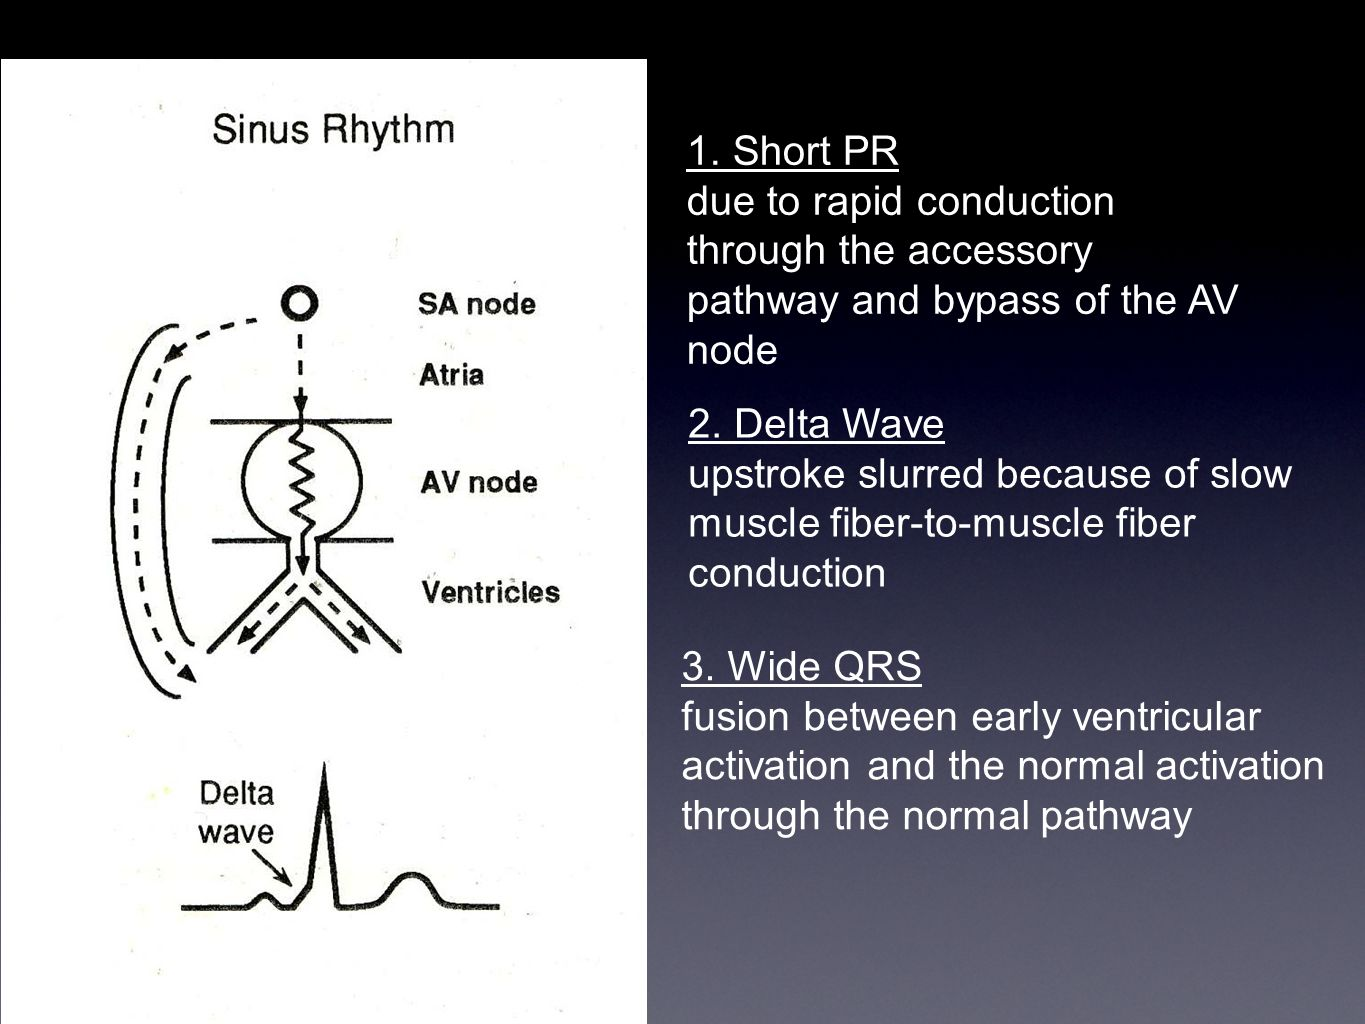 1. Short PR due to rapid conduction through the accessory pathway and bypass of the AV node 2. Delta Wave upstroke slurred because of slow muscle fibe